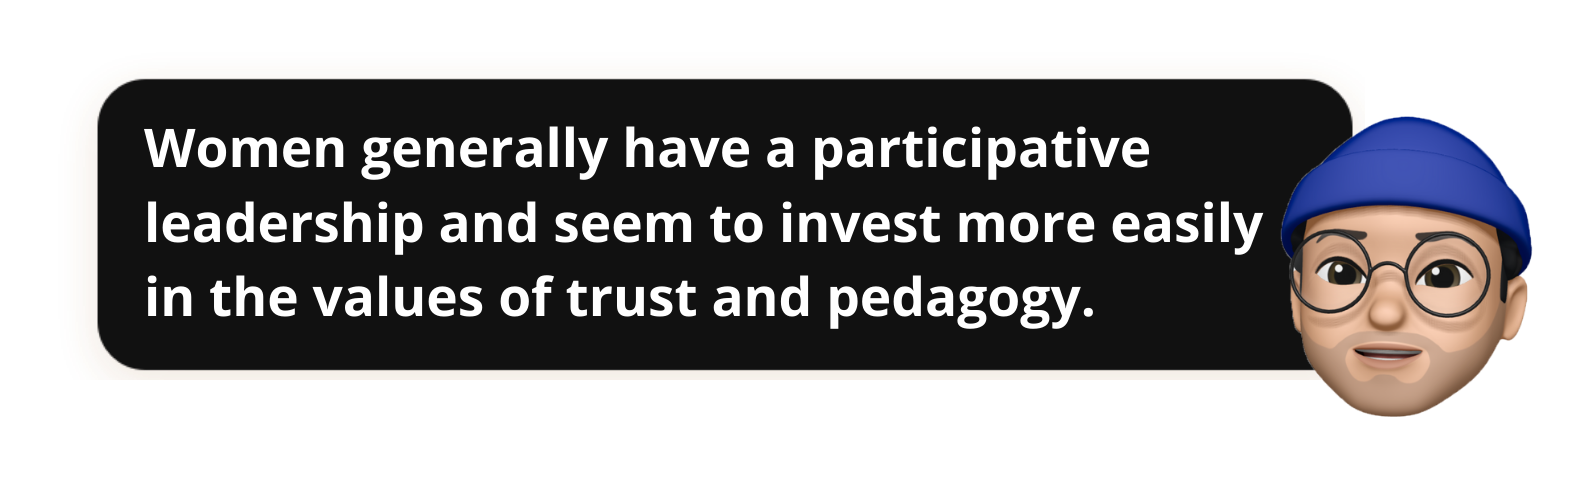 Women generally have a participative leadership and seem to invest more easily in the values of trust and pedagogy.- Popwork